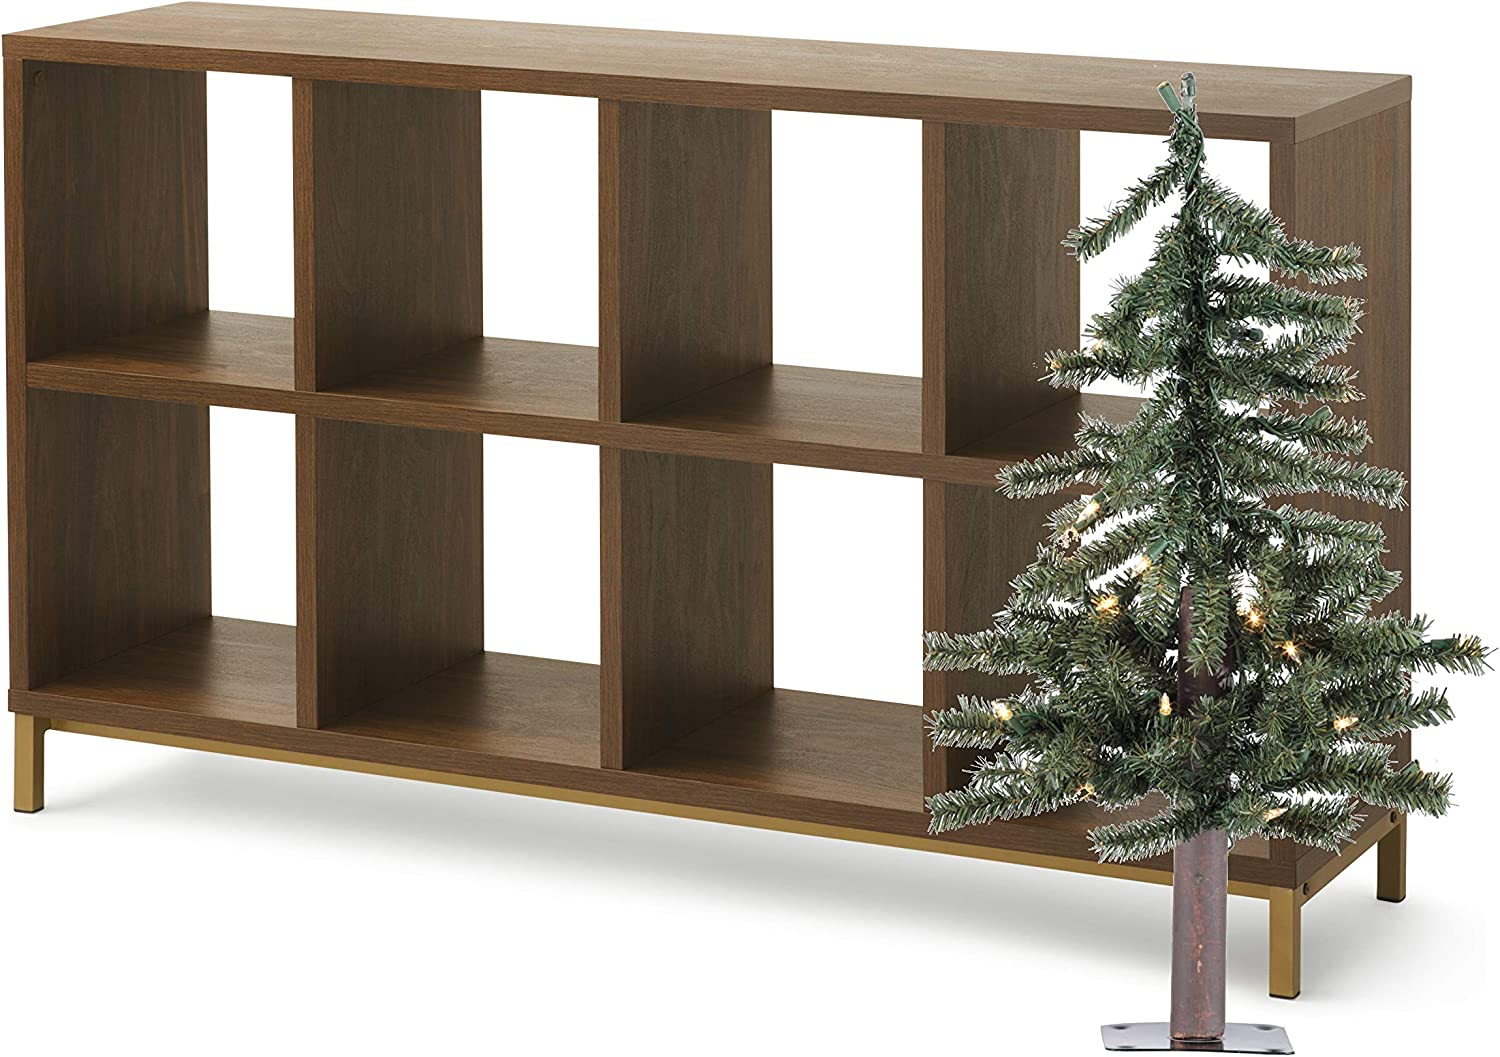 Better Homes and Gardens 8-Cube Organizer with Special Tree Bundle, Classic Walnut